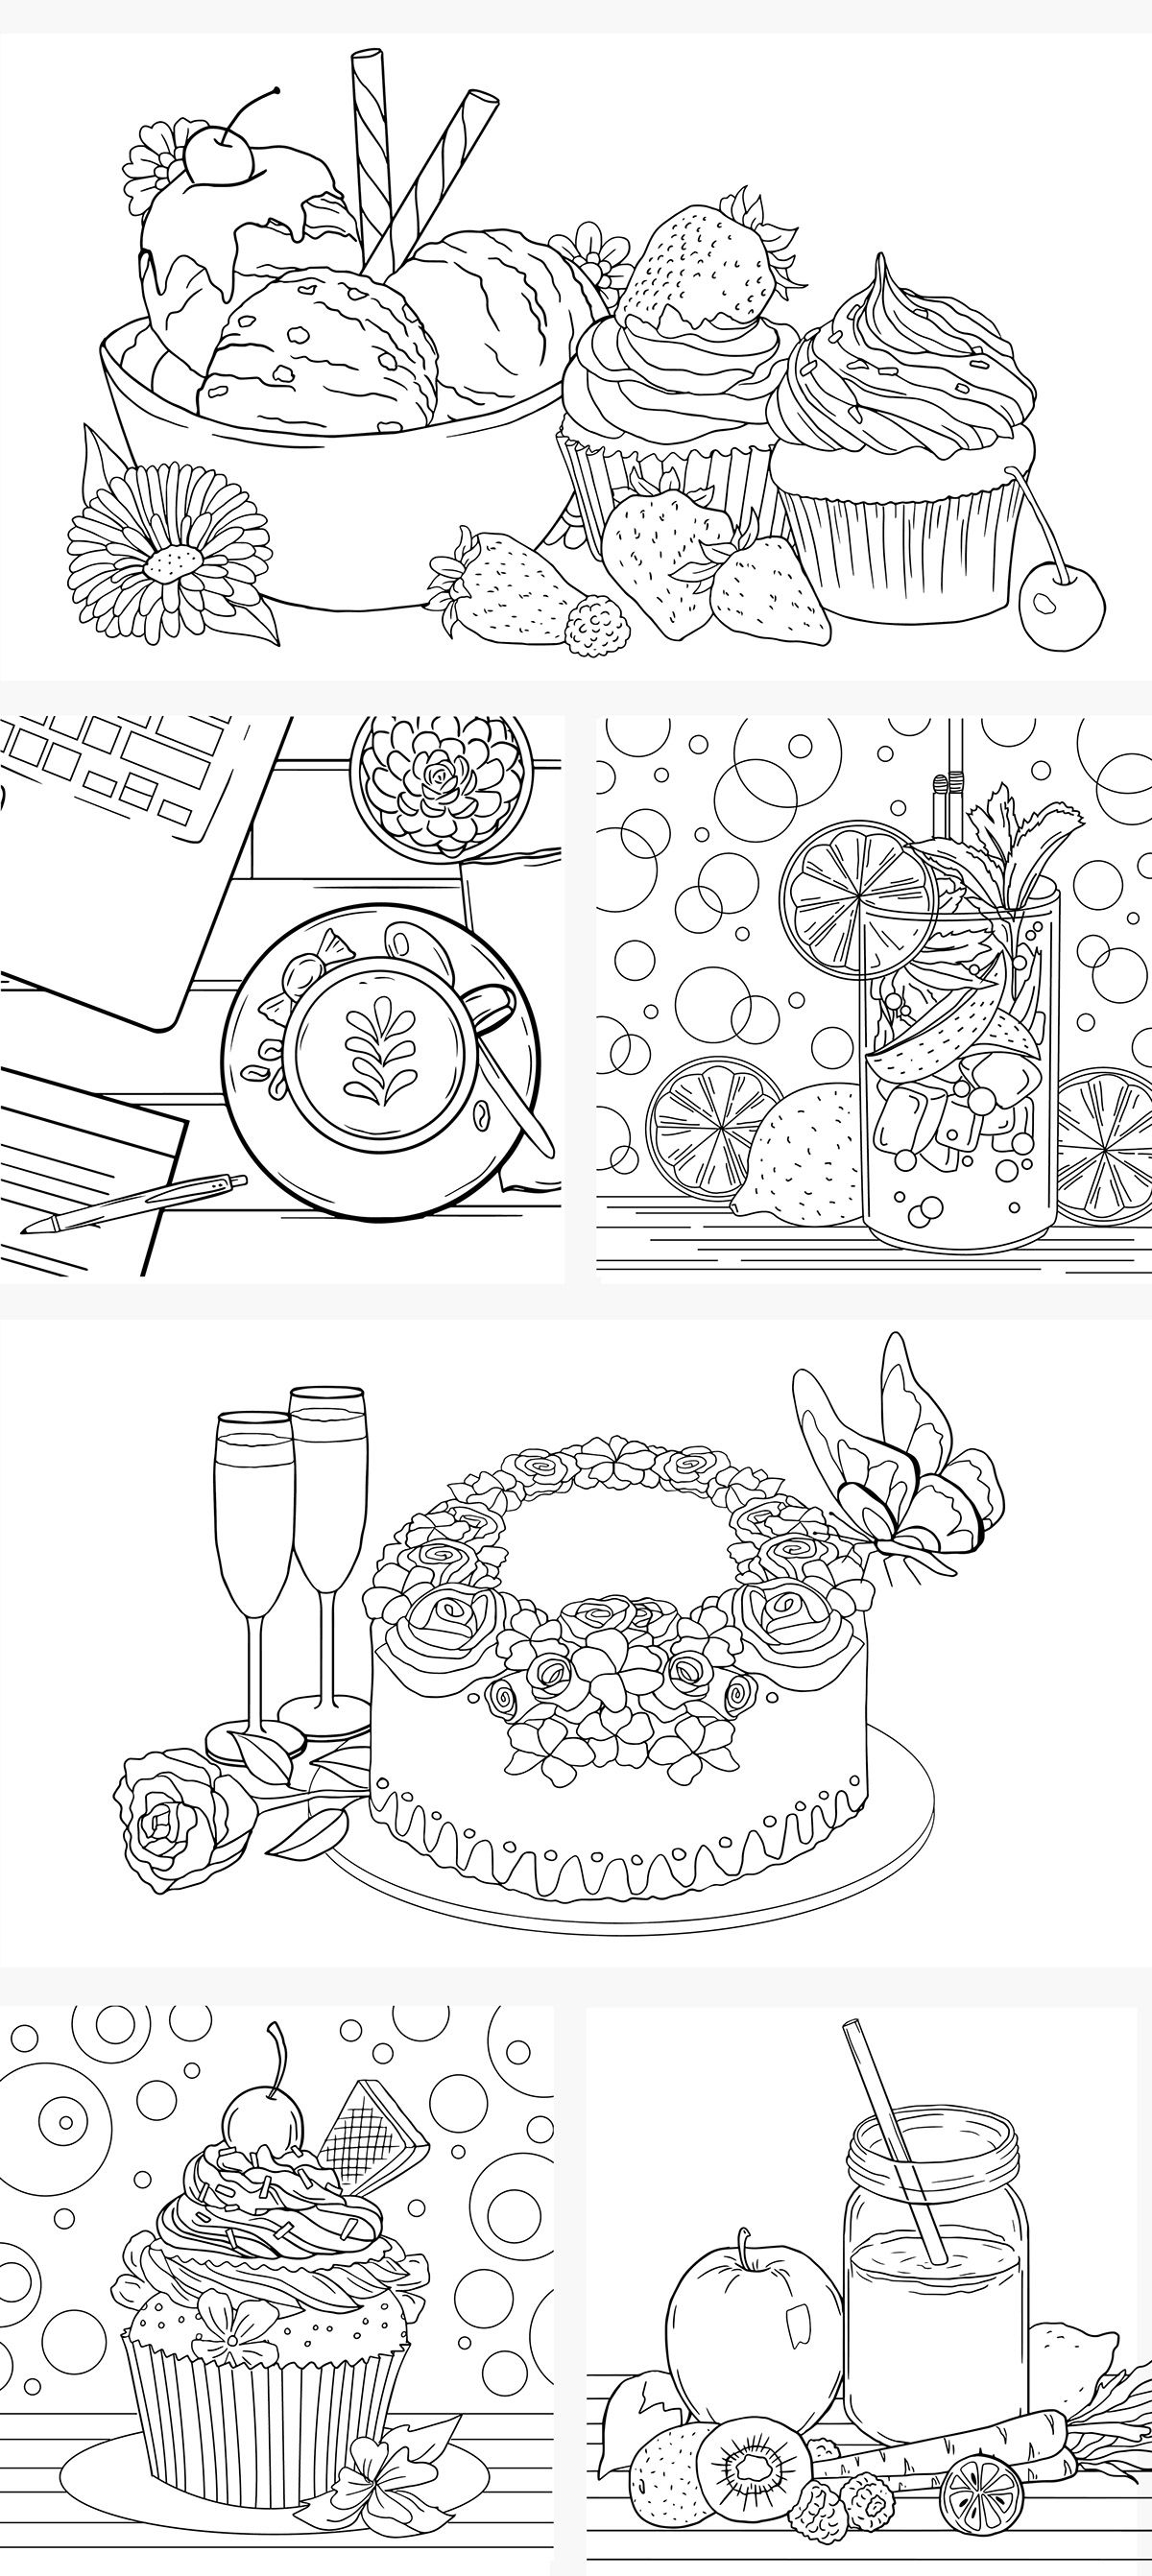 Coloring Pages Food On Behance Food Coloring Pages Mothers Day Coloring Pages Coloring Pages For Boys